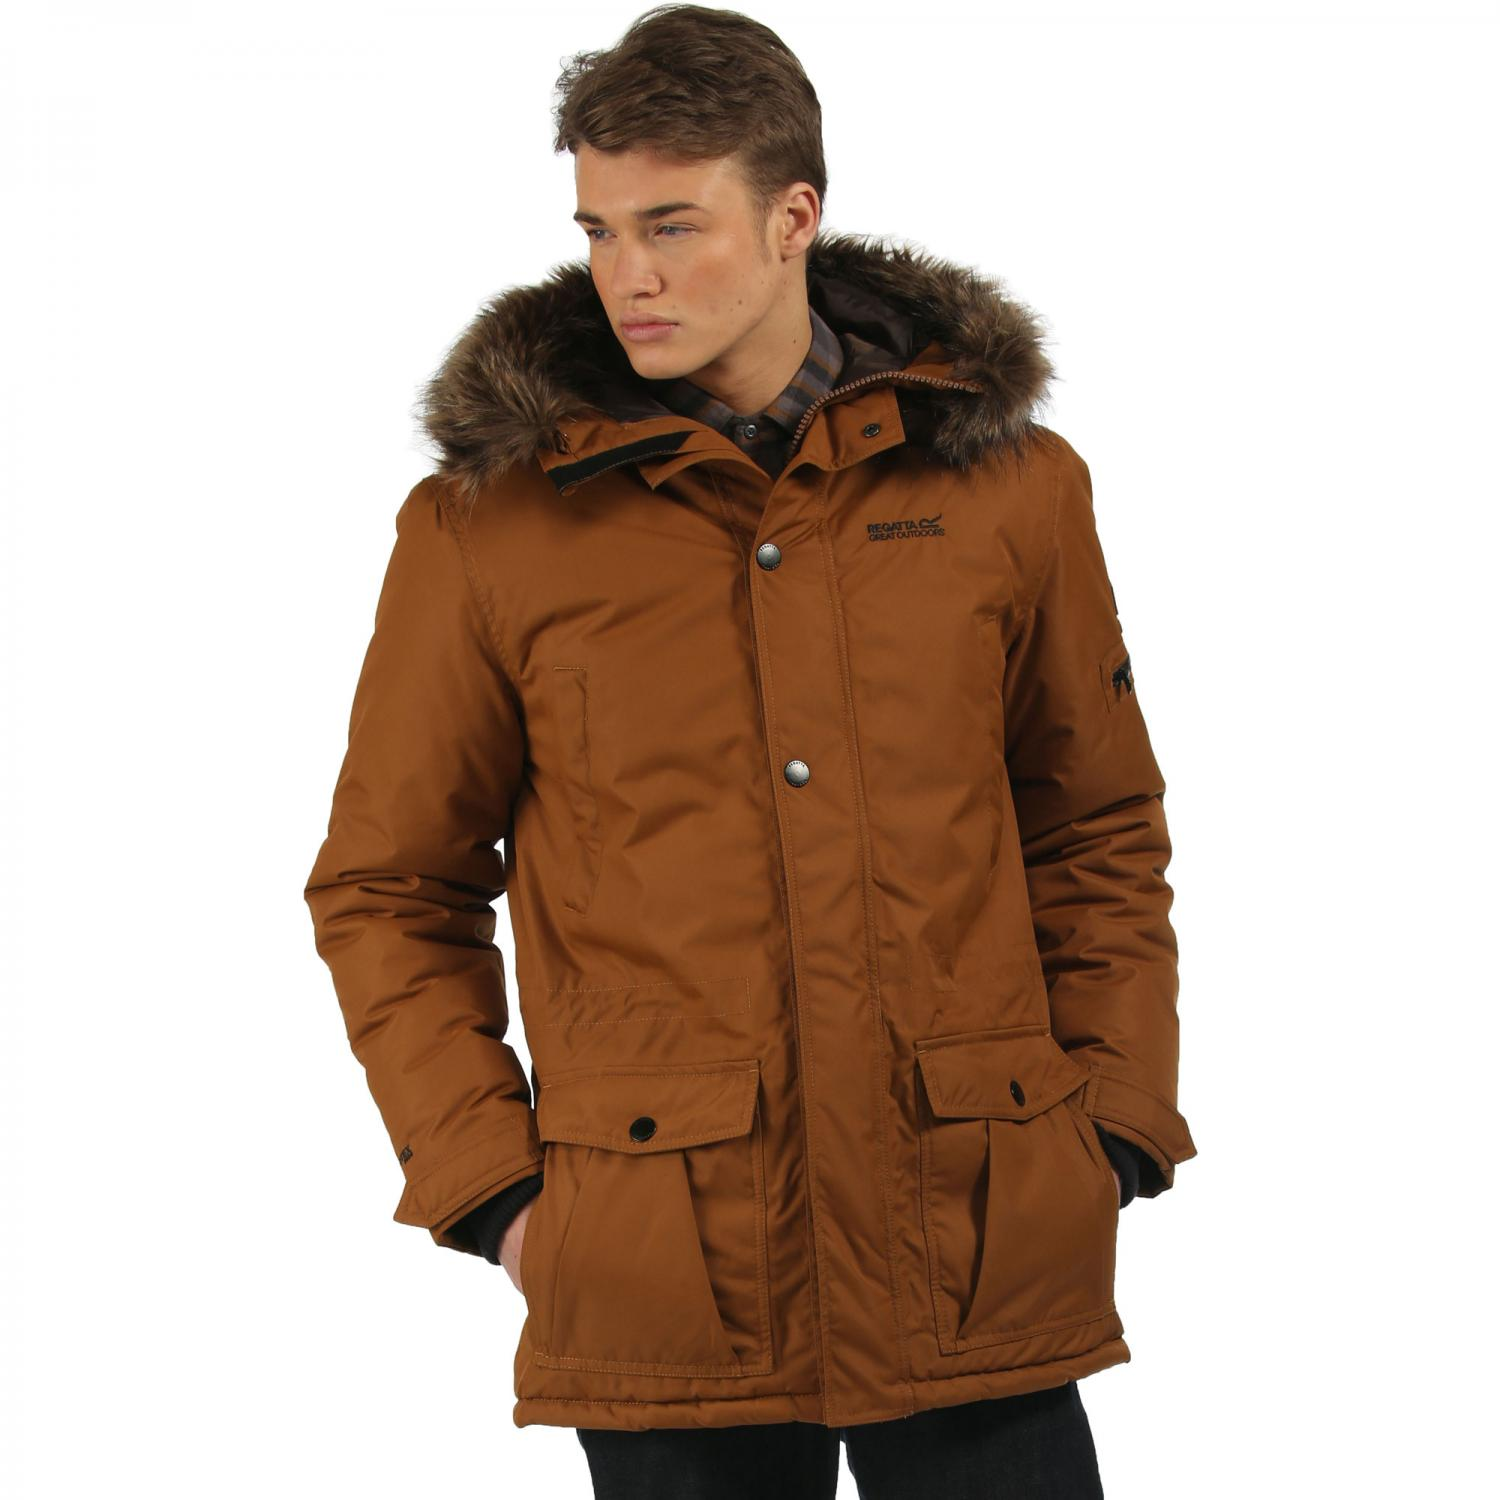 Alphar Parka Jacket Brown Tan